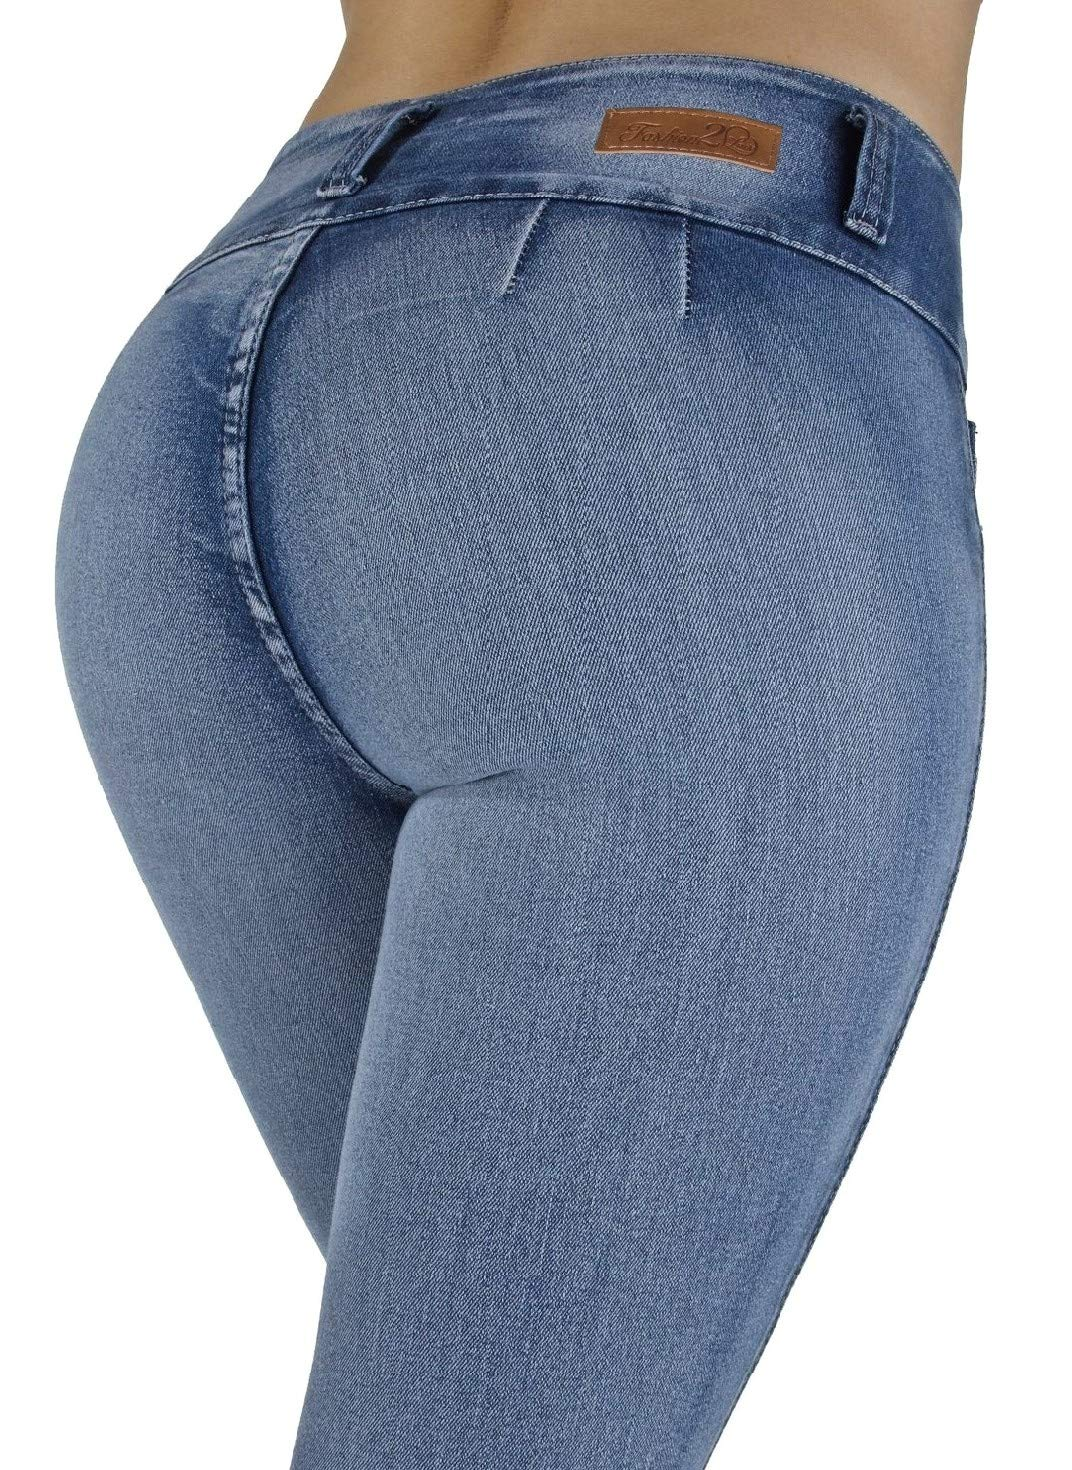 Fashion2Love Style G208– Colombian Design, High Waist, Butt Lift, Levanta Cola, Skinny Jeans in M. Blue Size 11